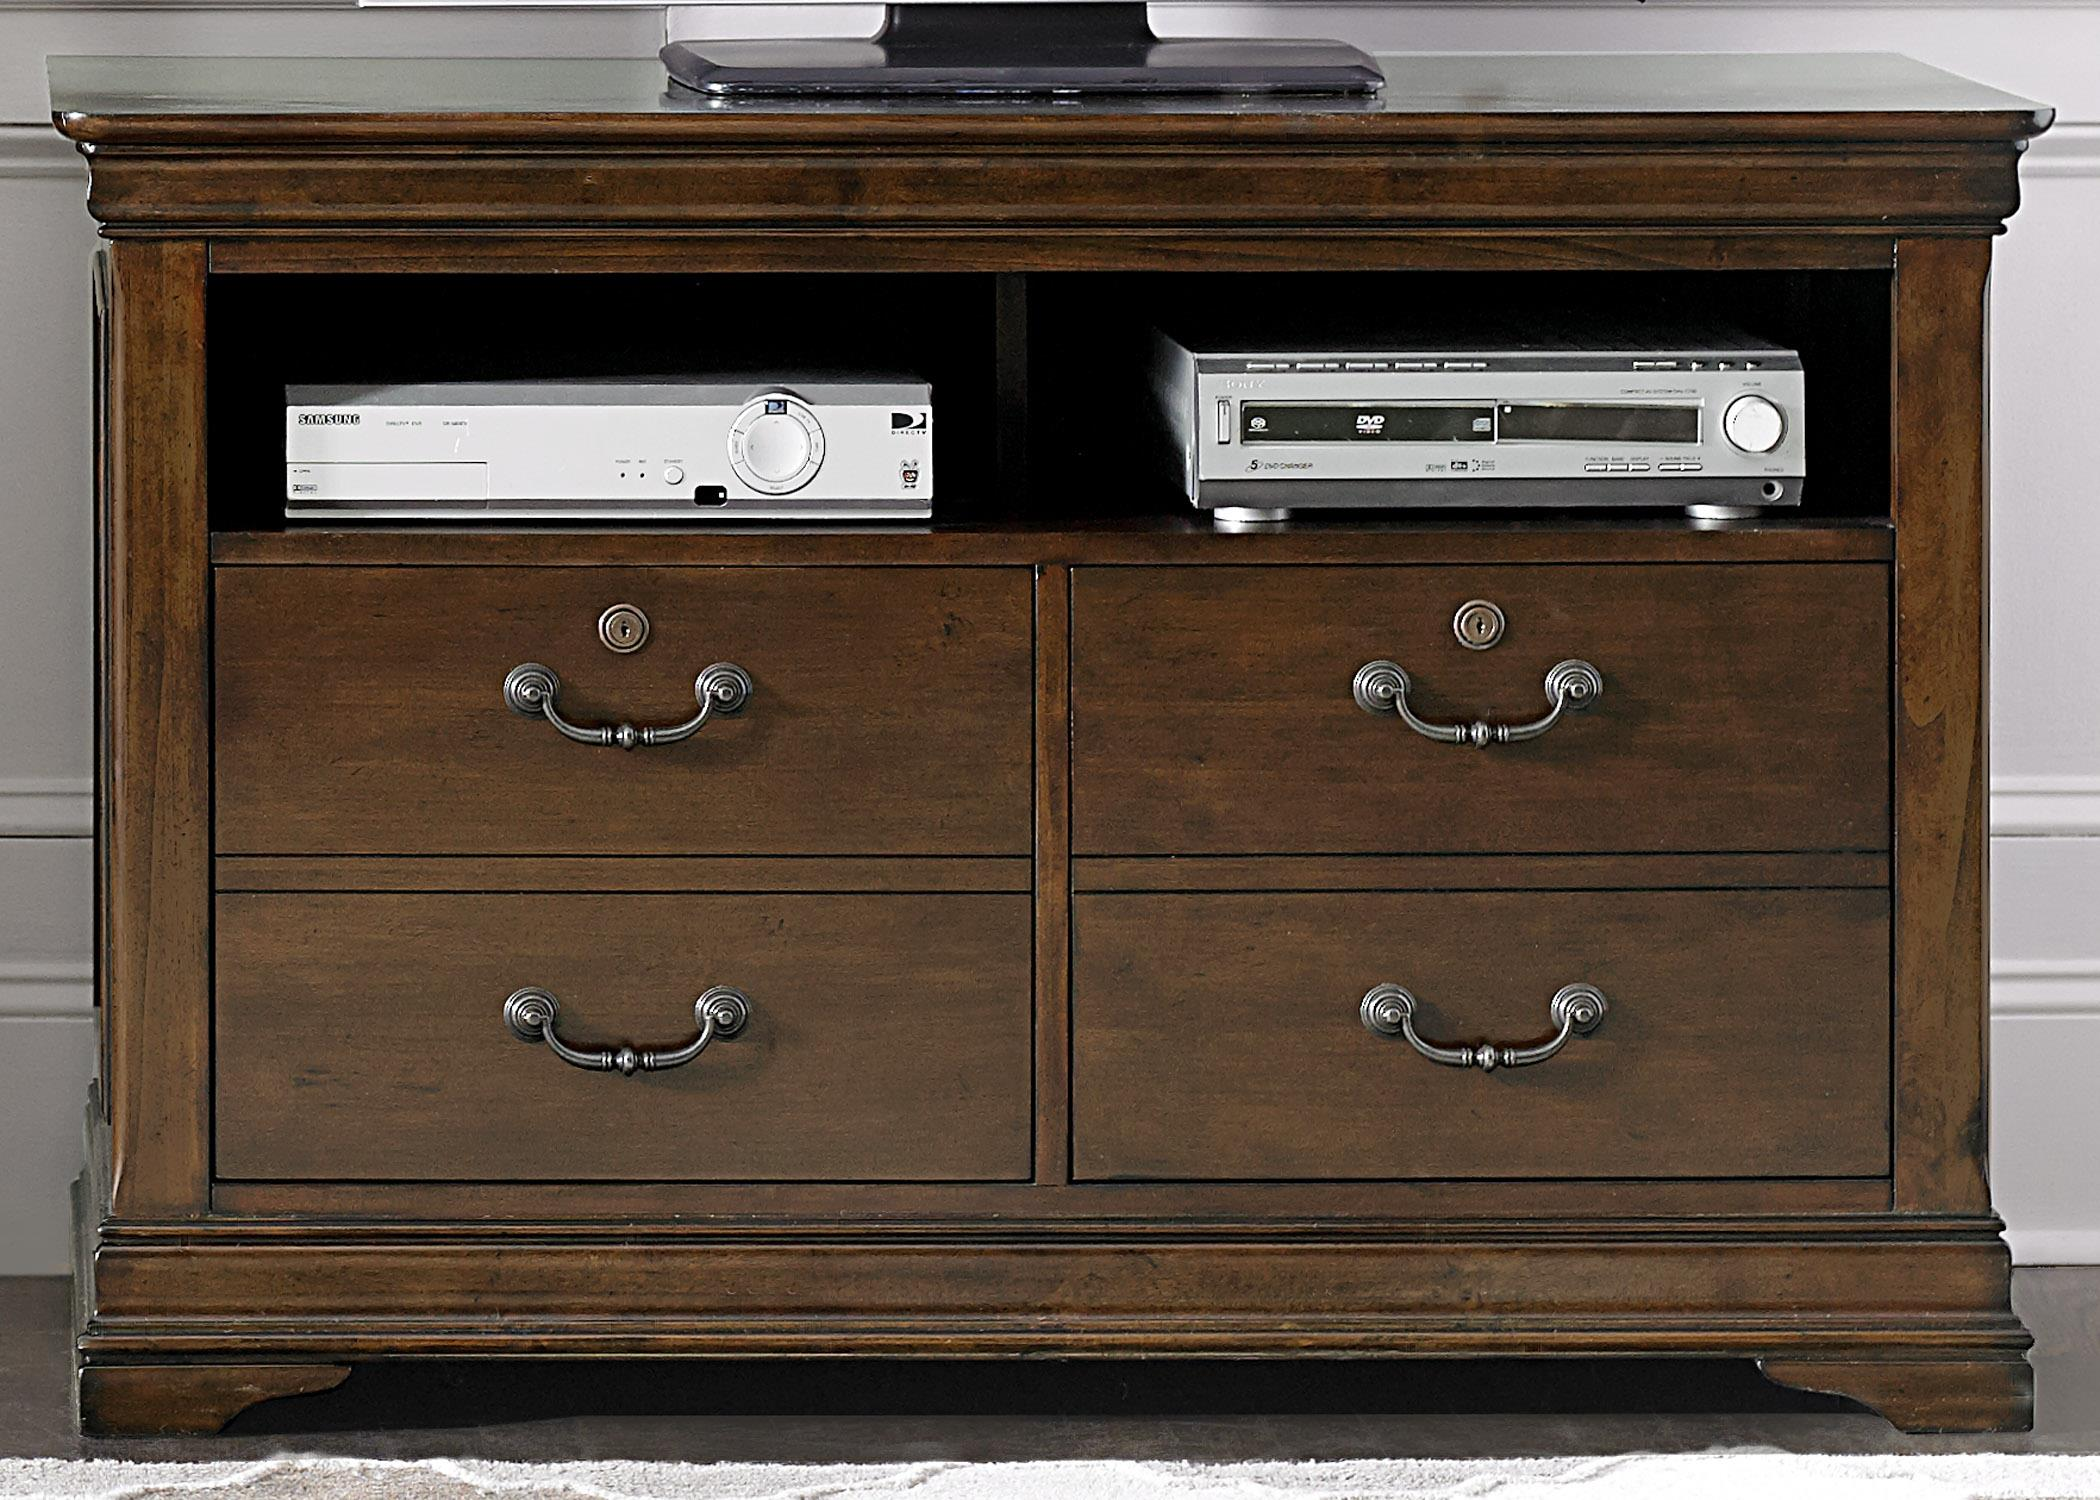 Liberty Furniture Chateau Valley Media File Cabinet - Item Number: 901-HO146